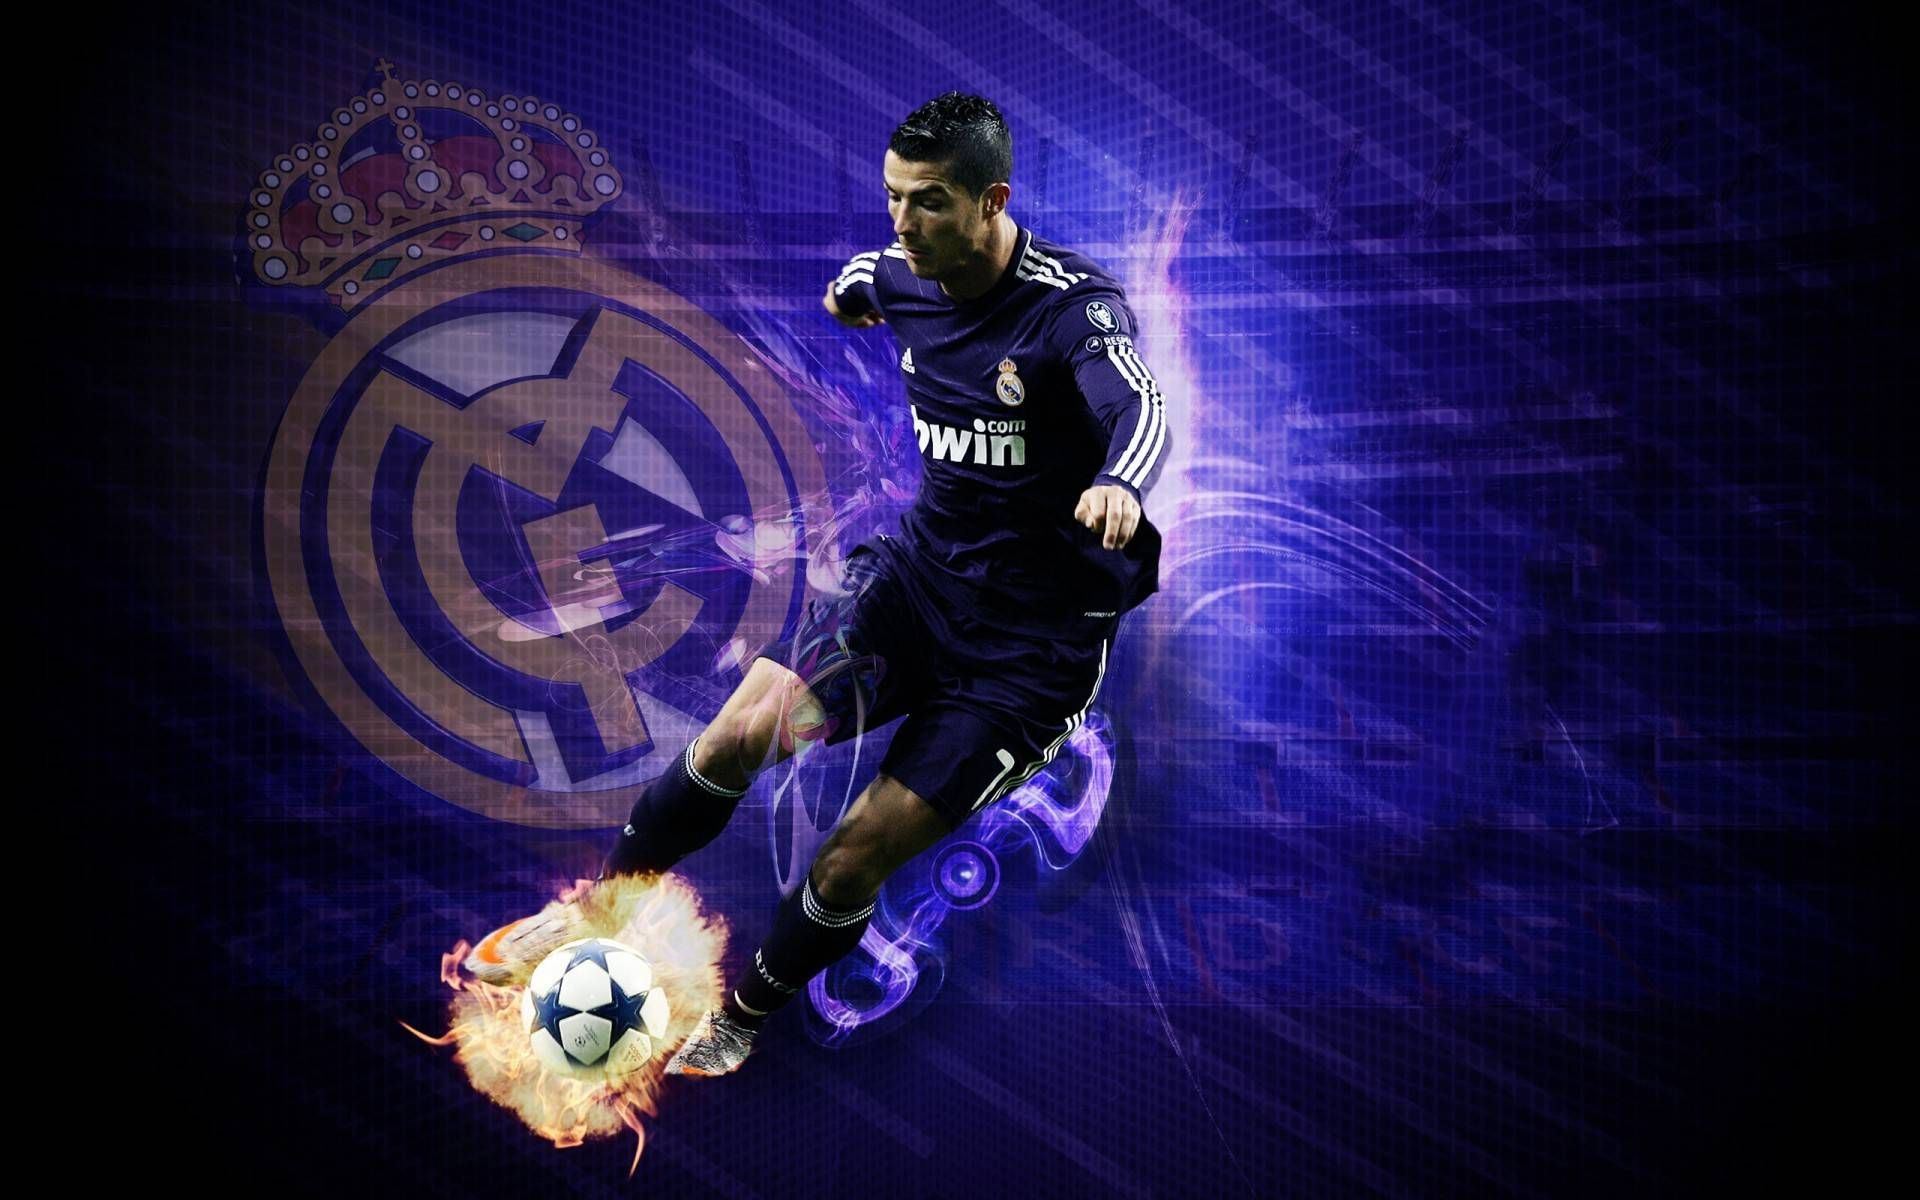 Undefined Wallpapers Cool 47 Wallpapers Adorable Wallpapers Cristiano Ronaldo Hd Wallpapers Football Wallpaper Real Madrid Logo Wallpapers